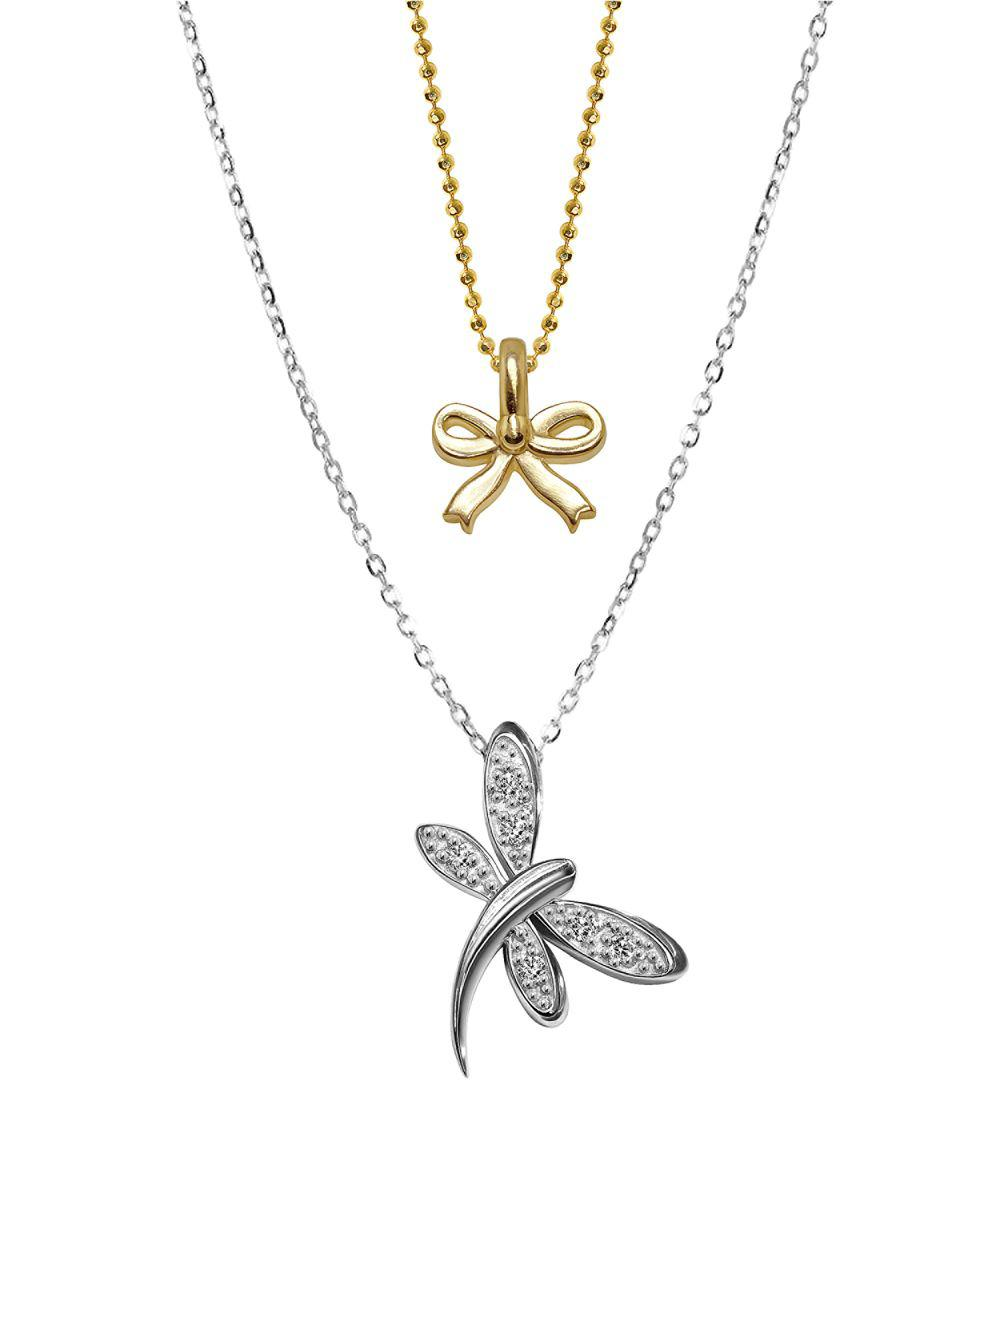 Alex woo 14k white gold dragonfly and mini yellow gold bow pendant white gold dragonfly and mini yellow gold bow pendant necklace view fullscreen aloadofball Gallery